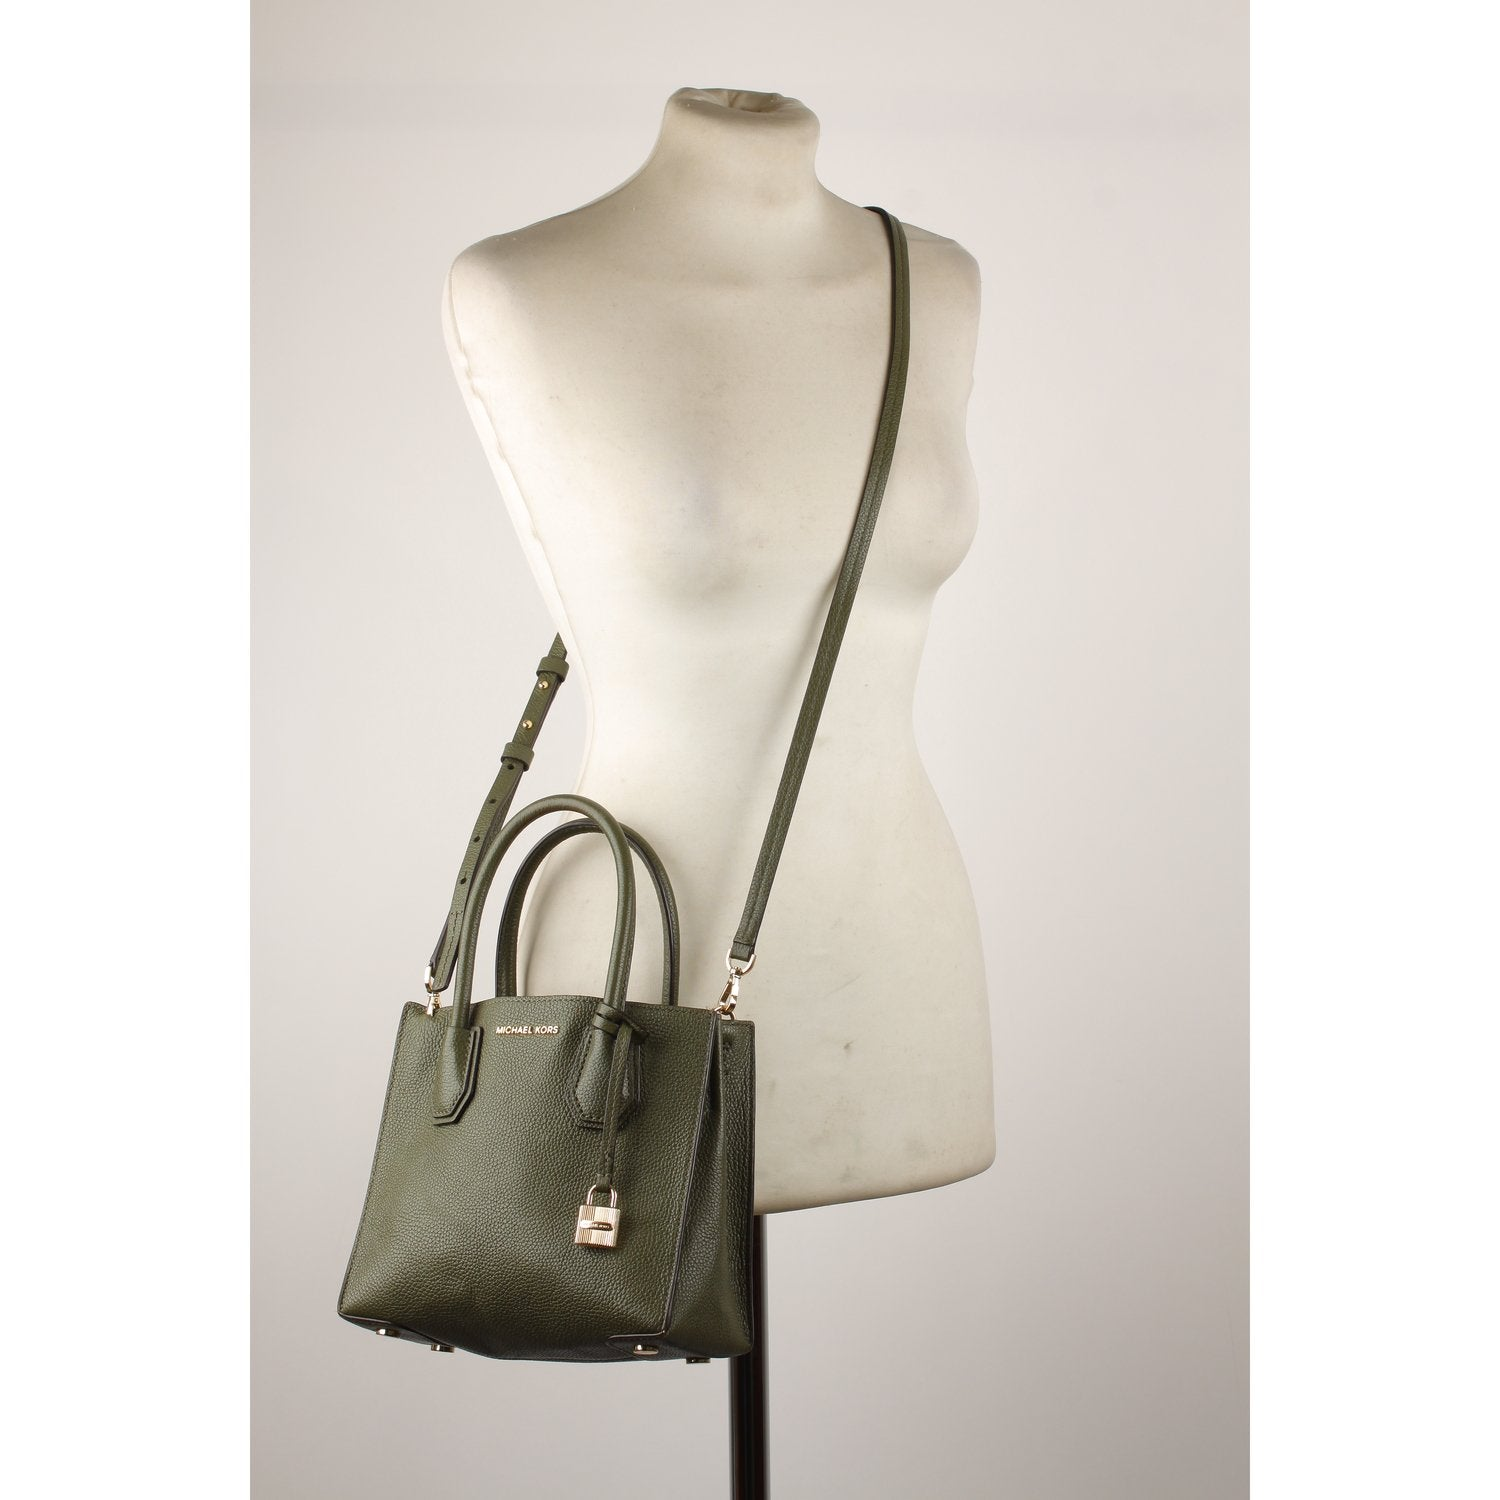 69849f895176 Enjoy Michael Kors Mercer Small Tote Bag at OPHERTYCIOCCI – OPHERTY ...